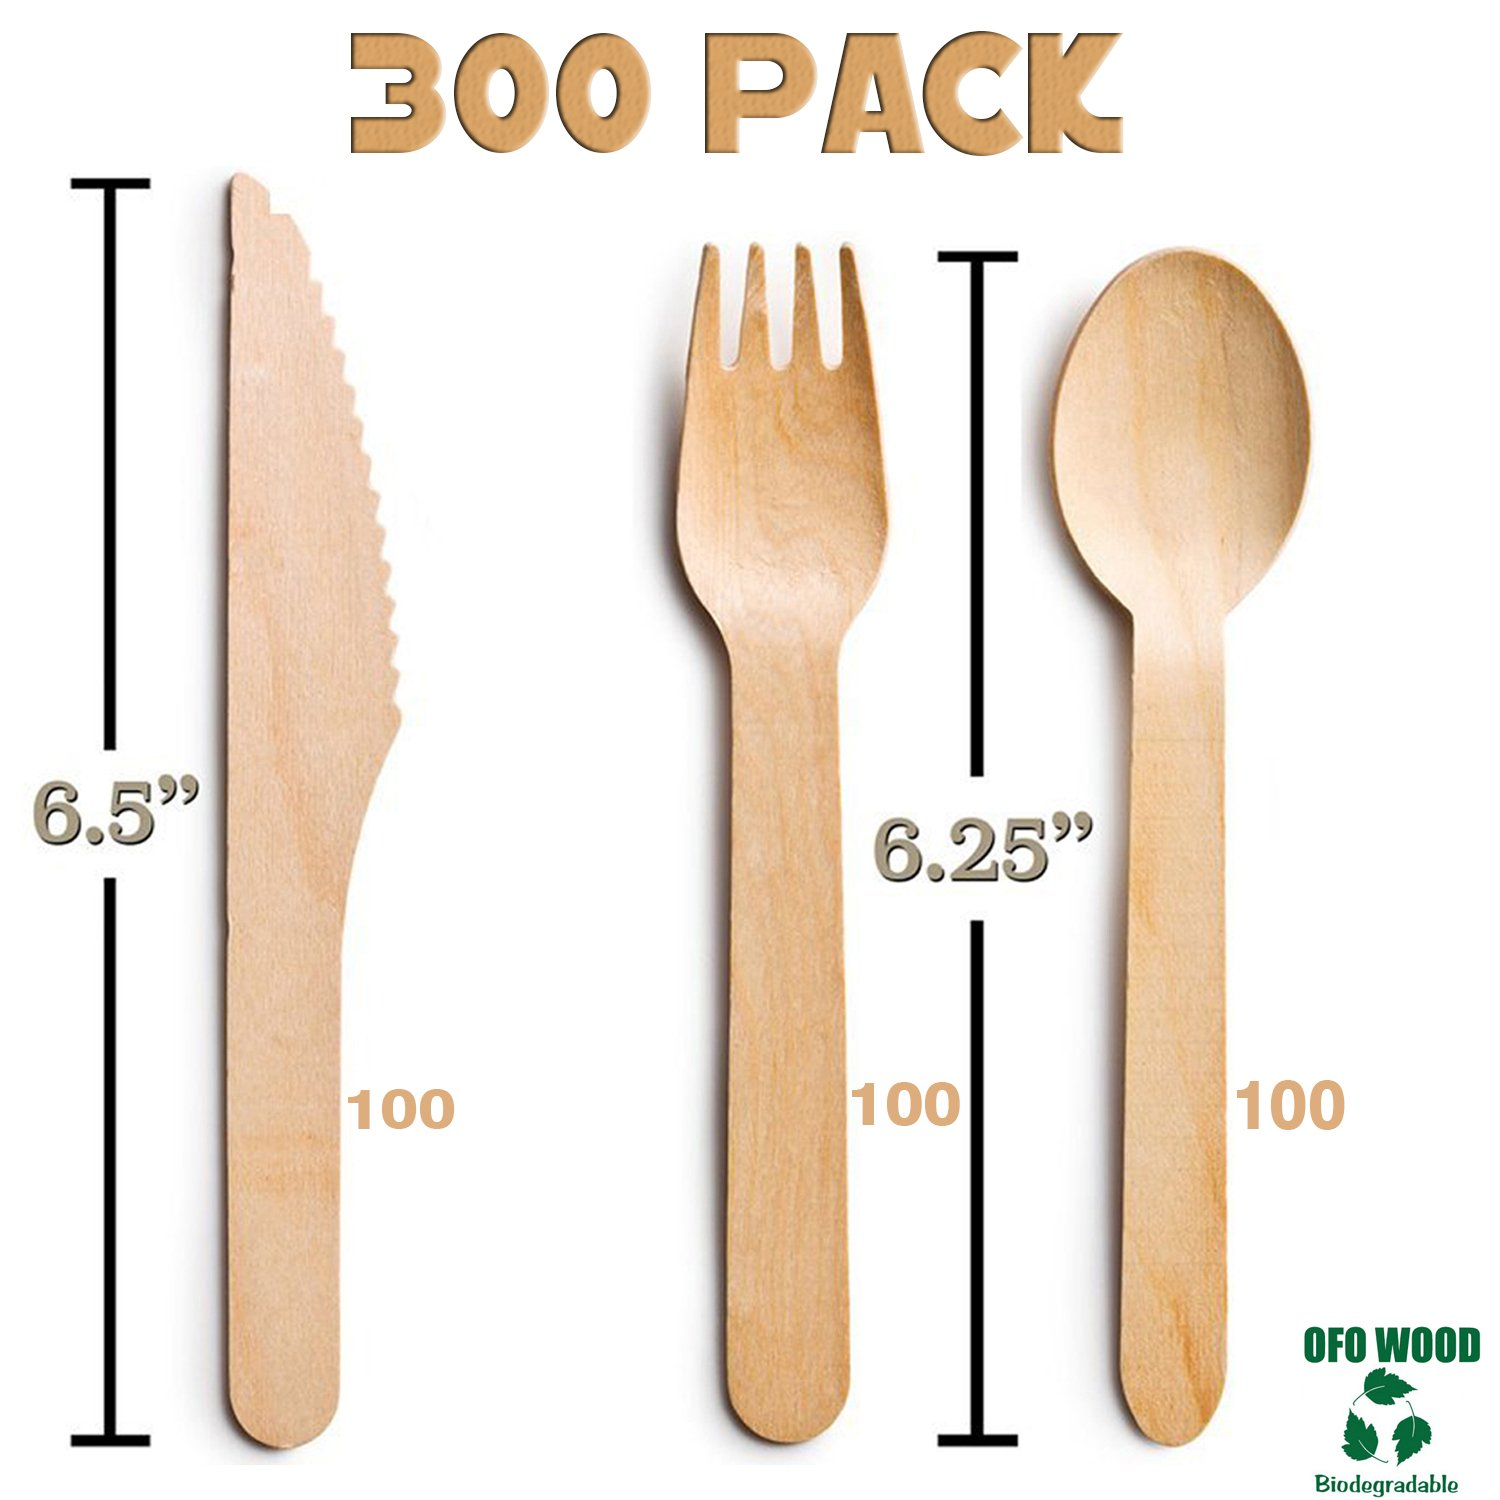 Wood set cutlery biodegradable-disposable-eco friendly-100 wooden forks-100 knives-100 spoons-For Parties, Picnics, Events & Weddings – Durable & Environmentally Safe by OFO WOOD (Image #1)